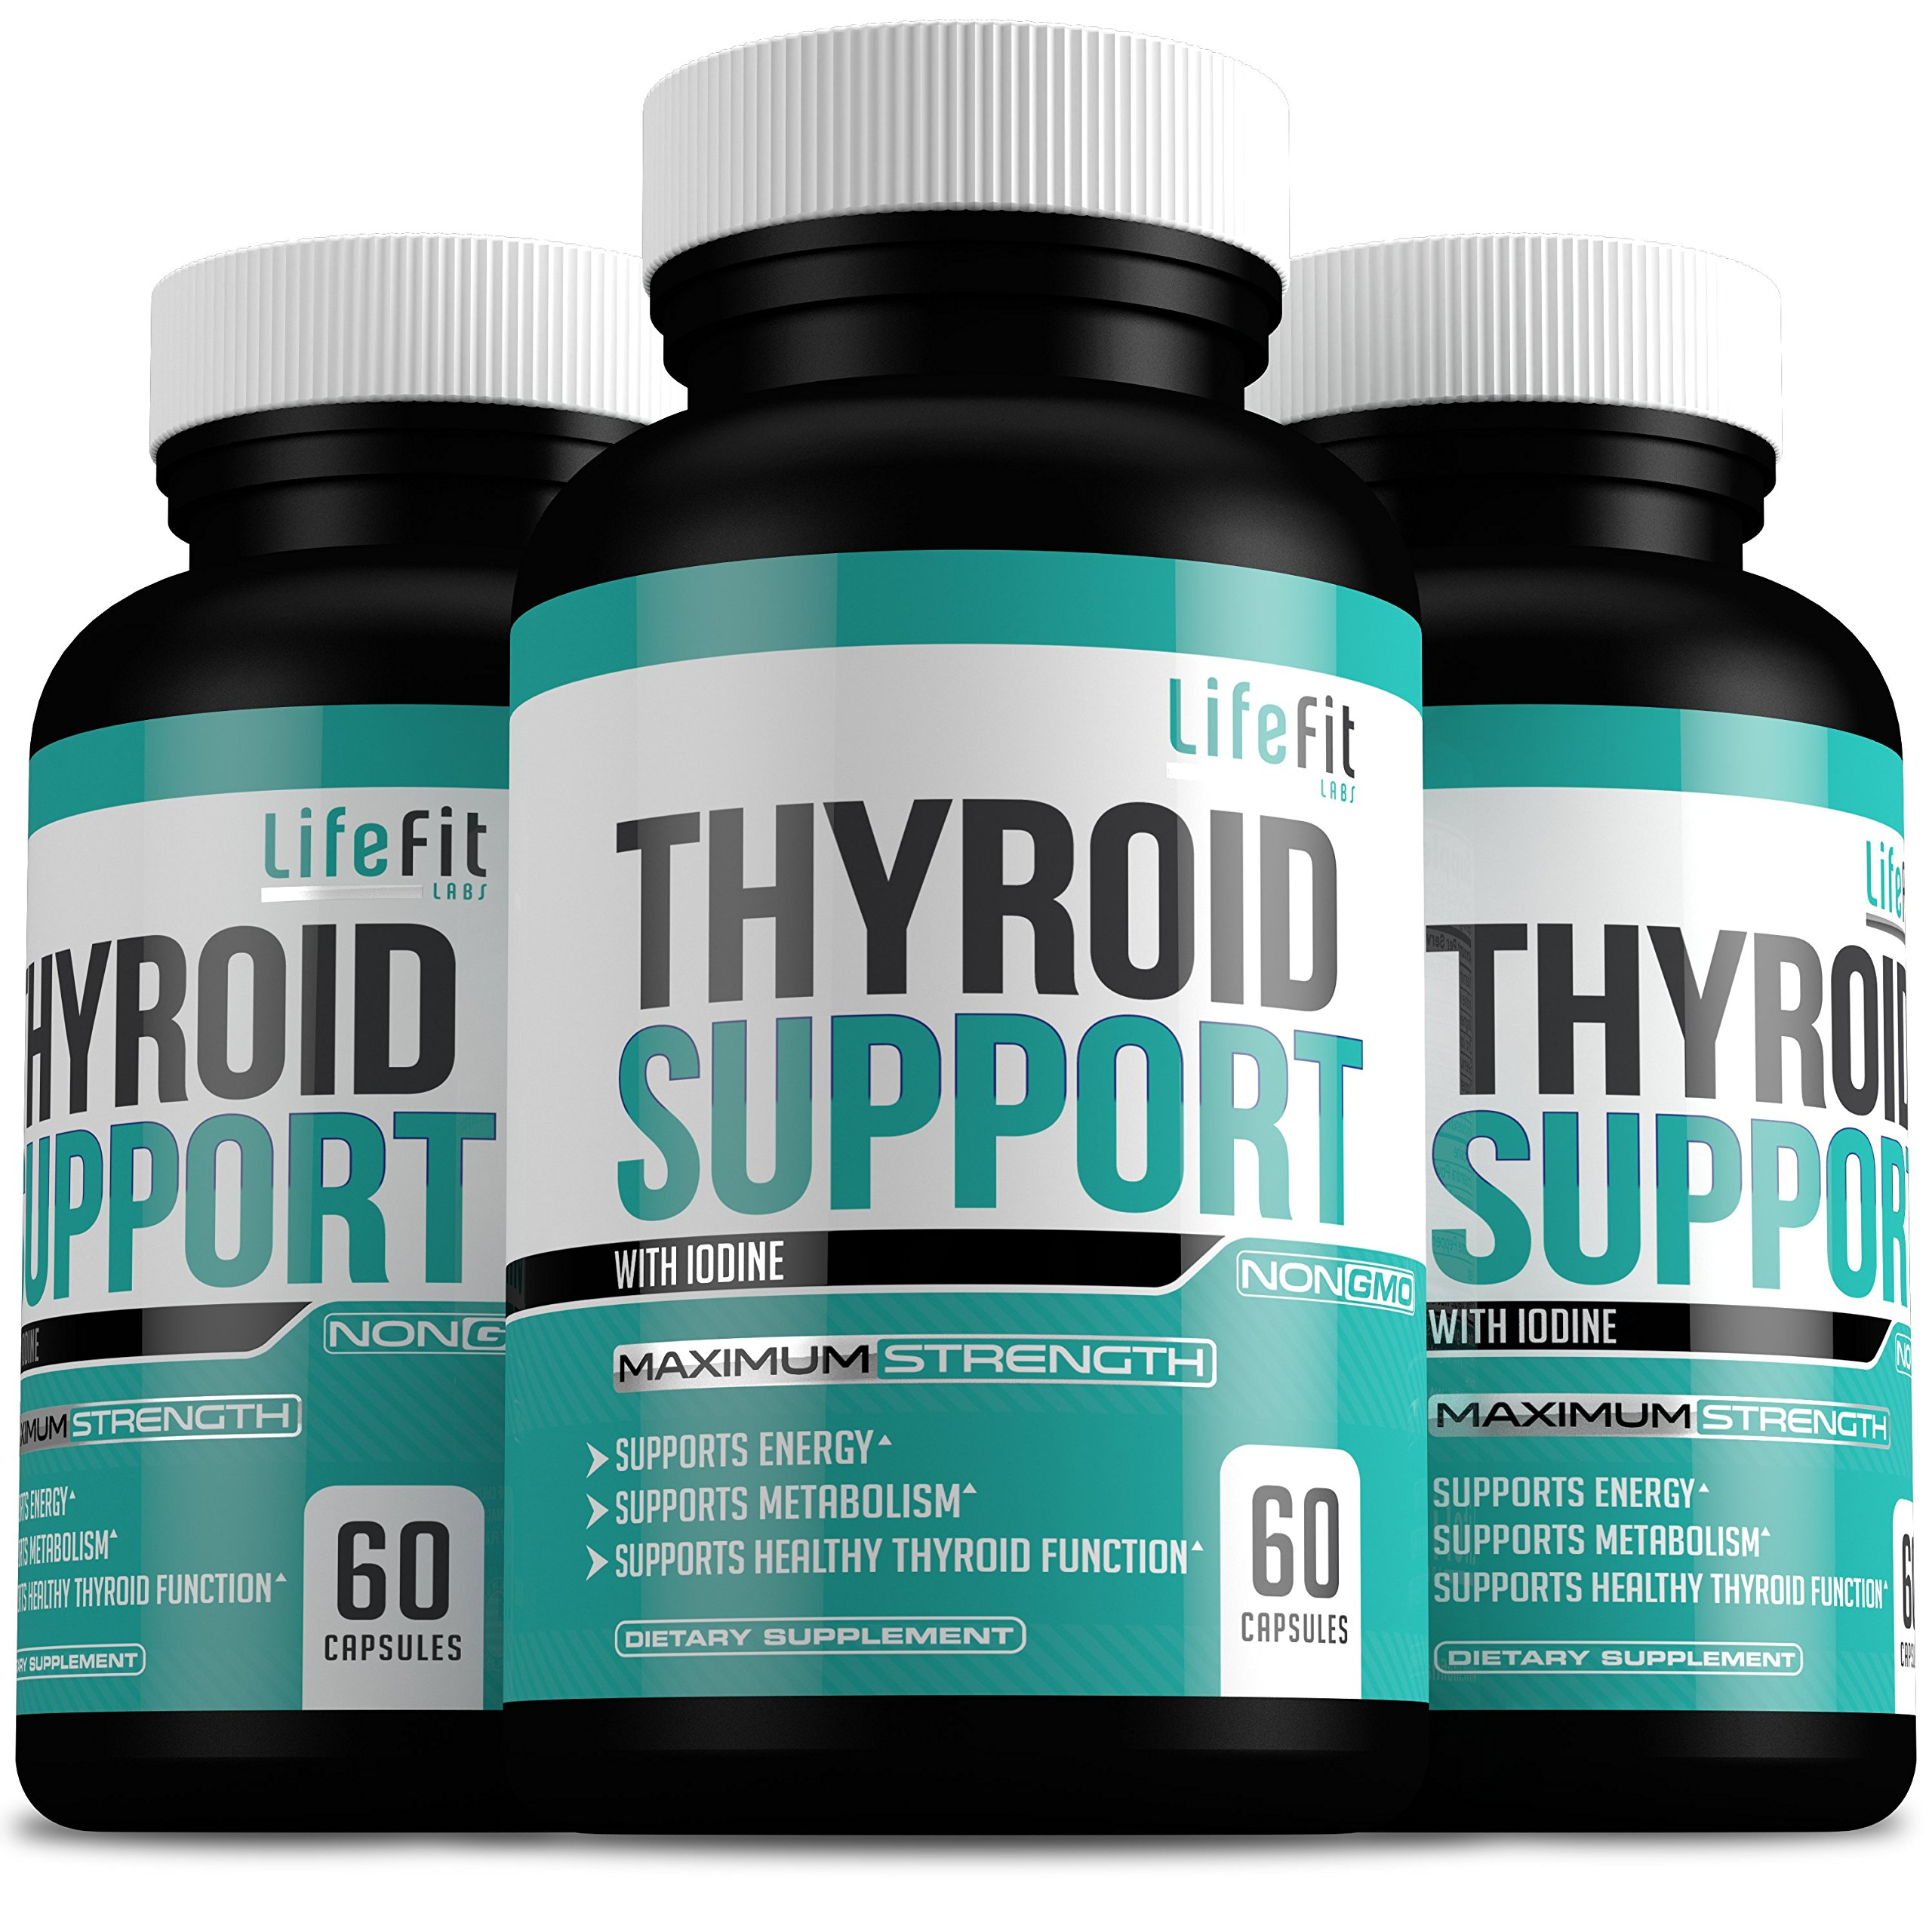 Thyroid Support Complex With Iodine: Improve Your Overall Health Level | Helps Increase Concentration & Weight Loss | Boosts Healthy Metabolism & Mental Clarity | Natural Health Supplement